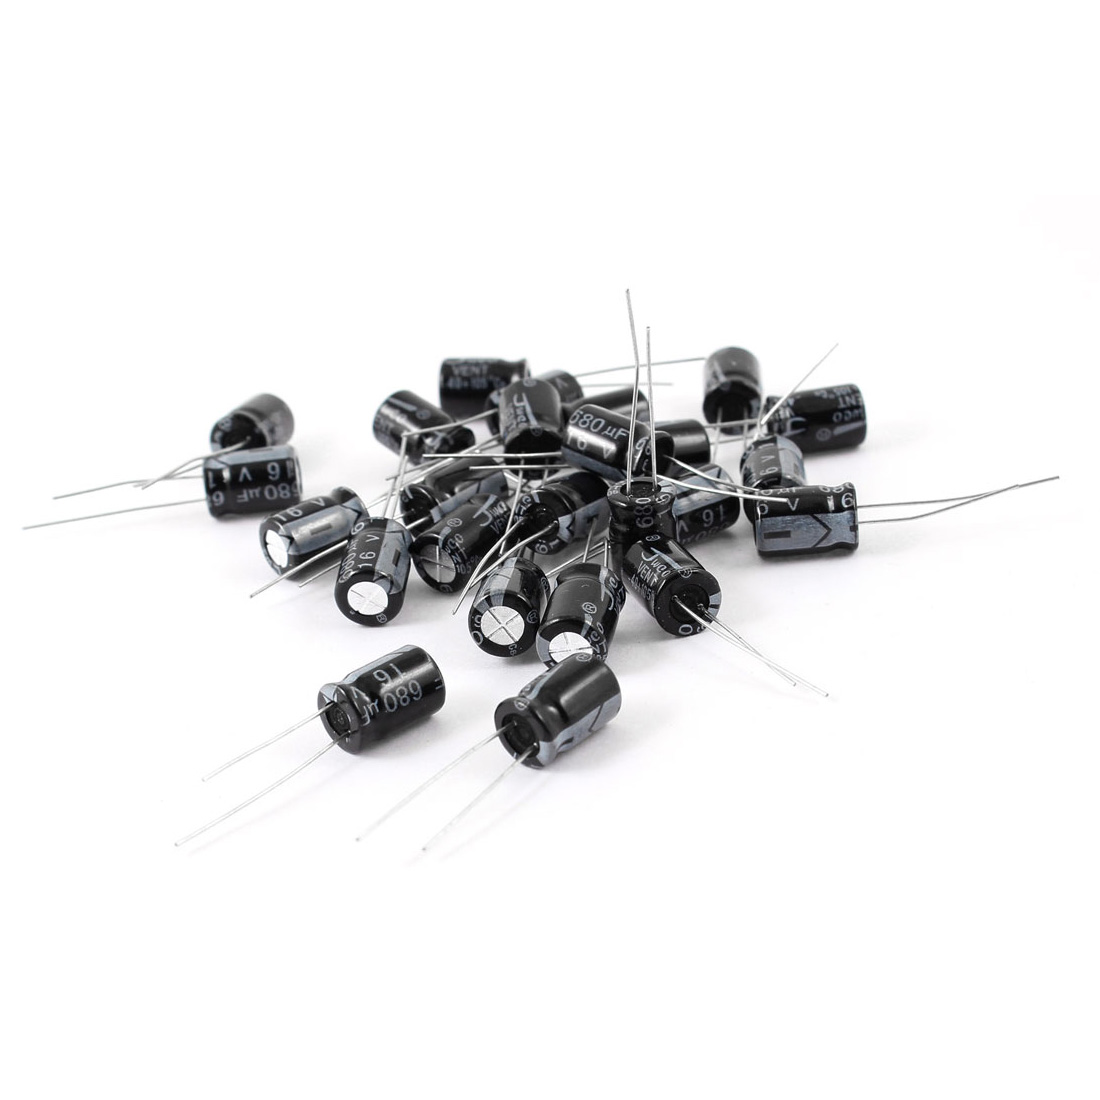 25 Pcs 680uF 16V 105C Radial Electrolytic Capacitors Black 8mm x 12mm